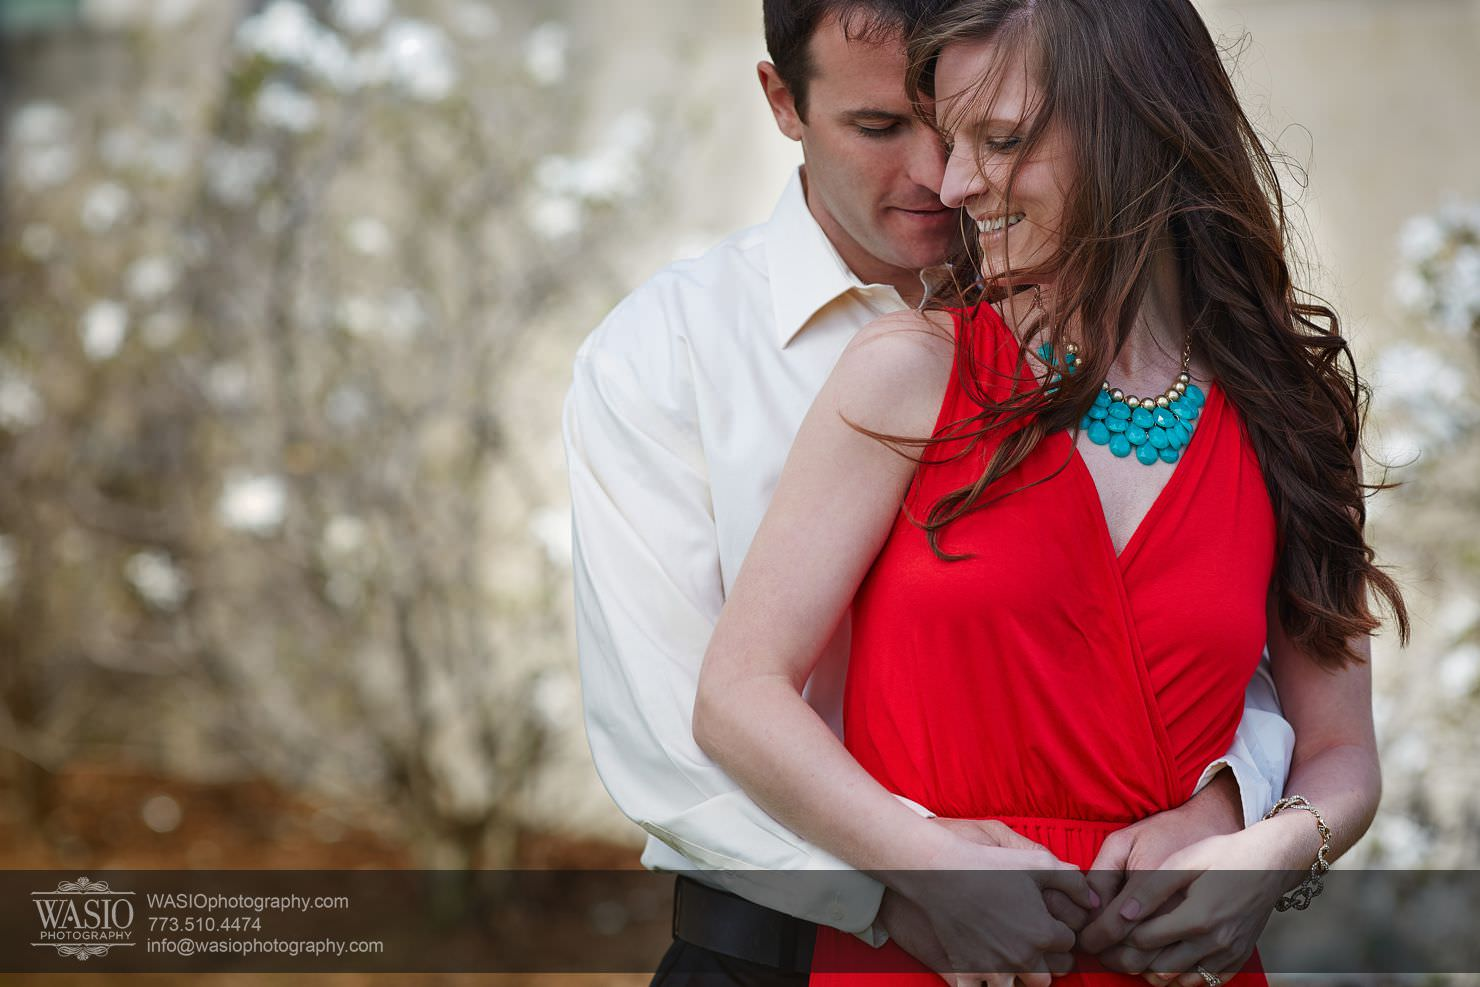 Roscoe-Village-Engagement-Amy-and-Kyle_010 Roscoe Village Engagement - Amy + Kyle